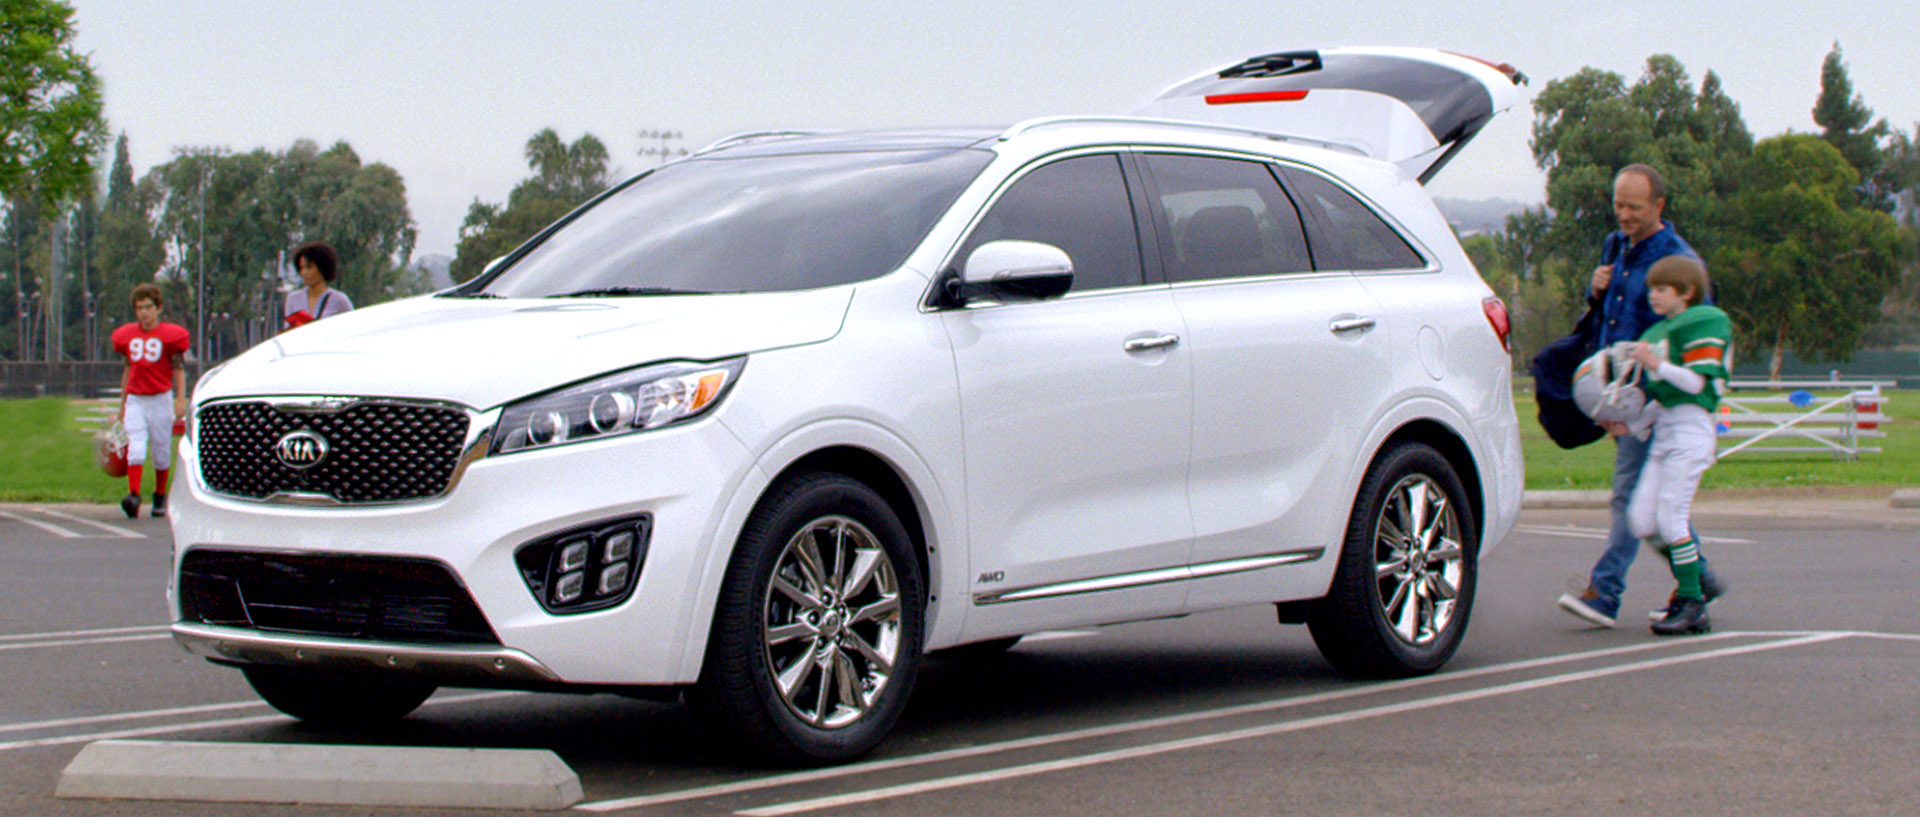 kia small new from research car motoring suv stonic prices news